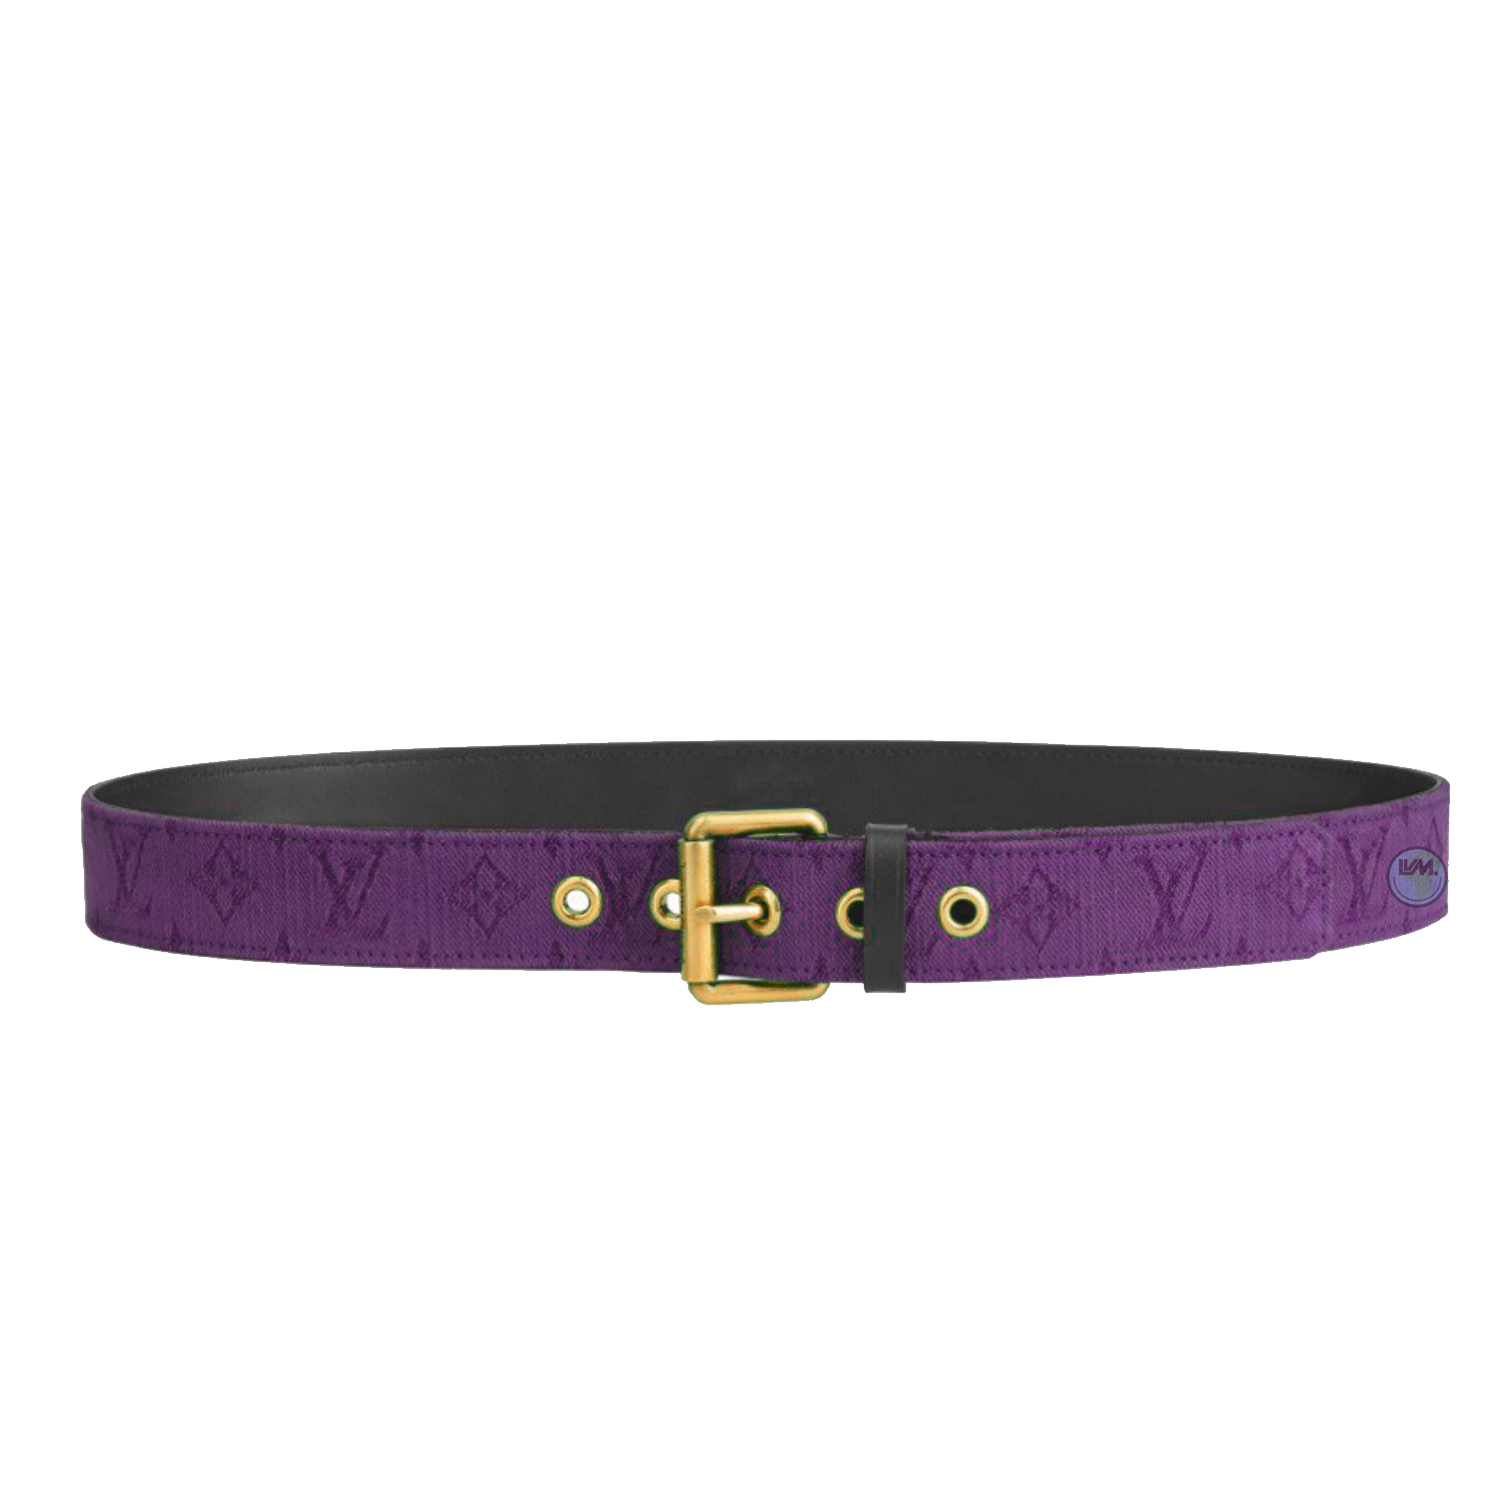 signature 35mm - €485 $715m0177monogram denim purple